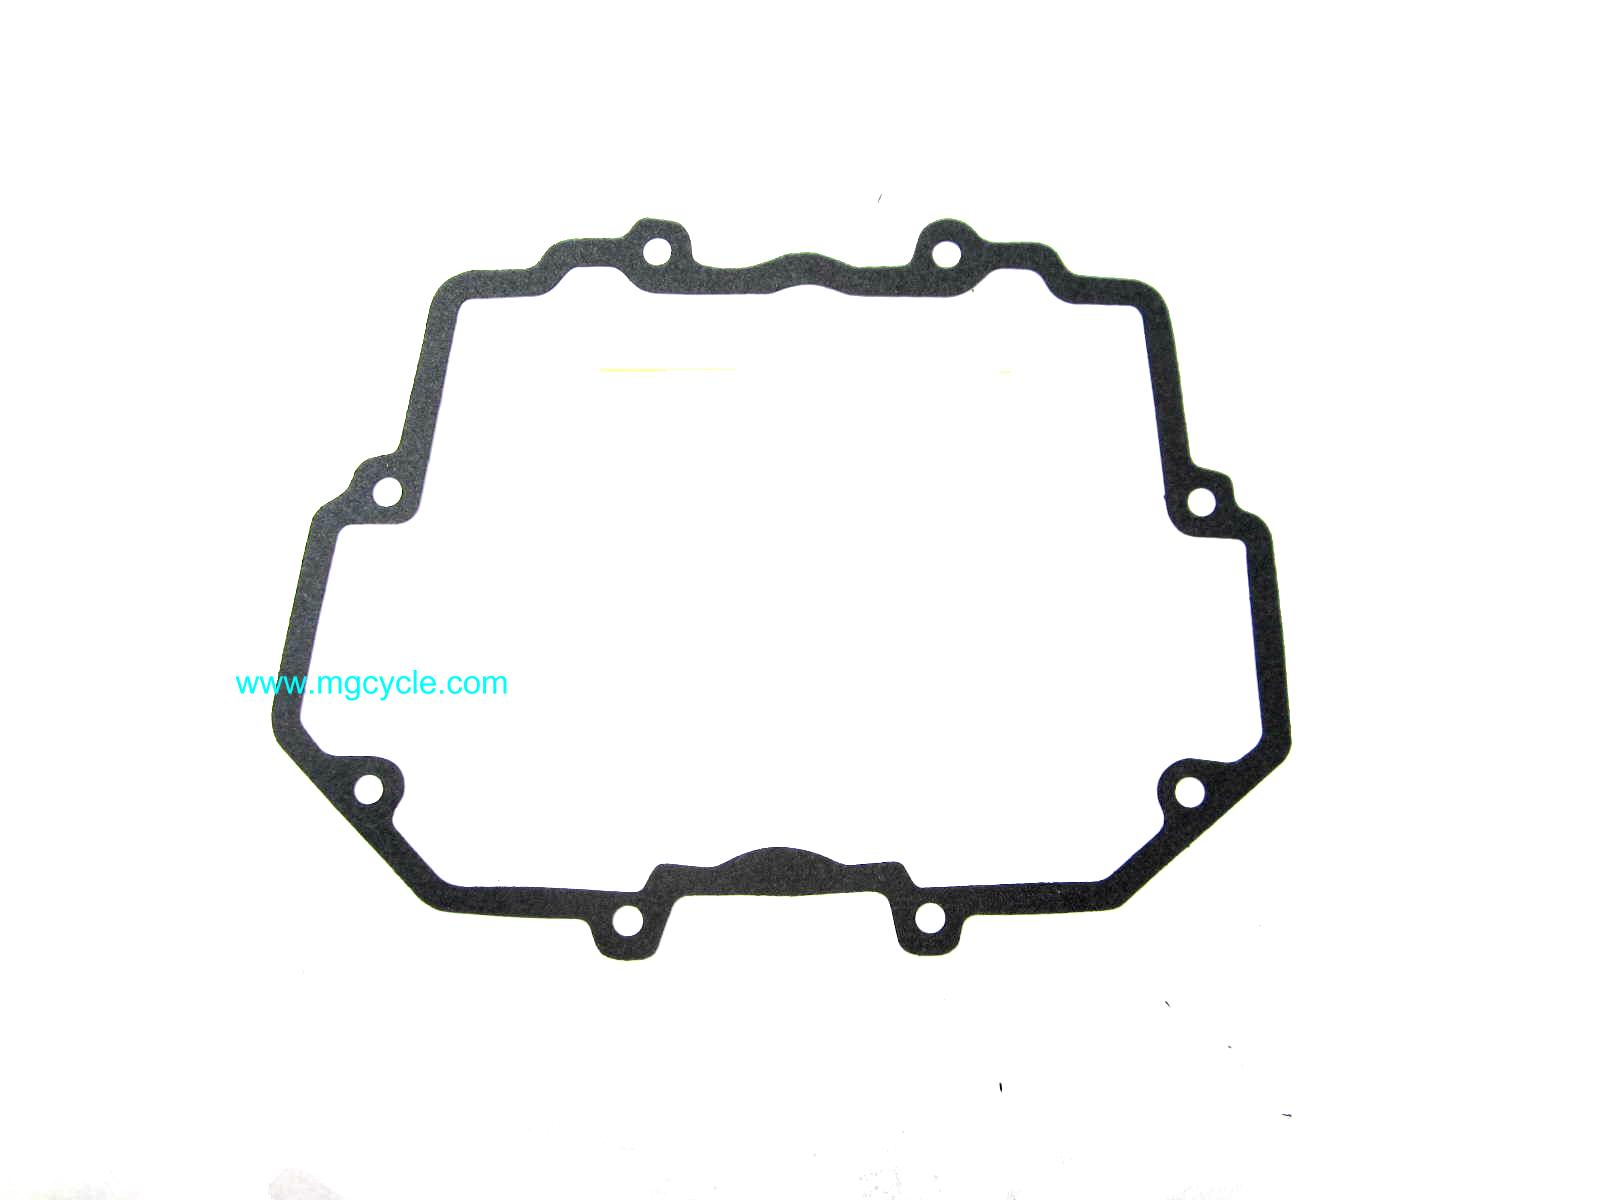 Valve cover gasket square fin big twins GU14023760